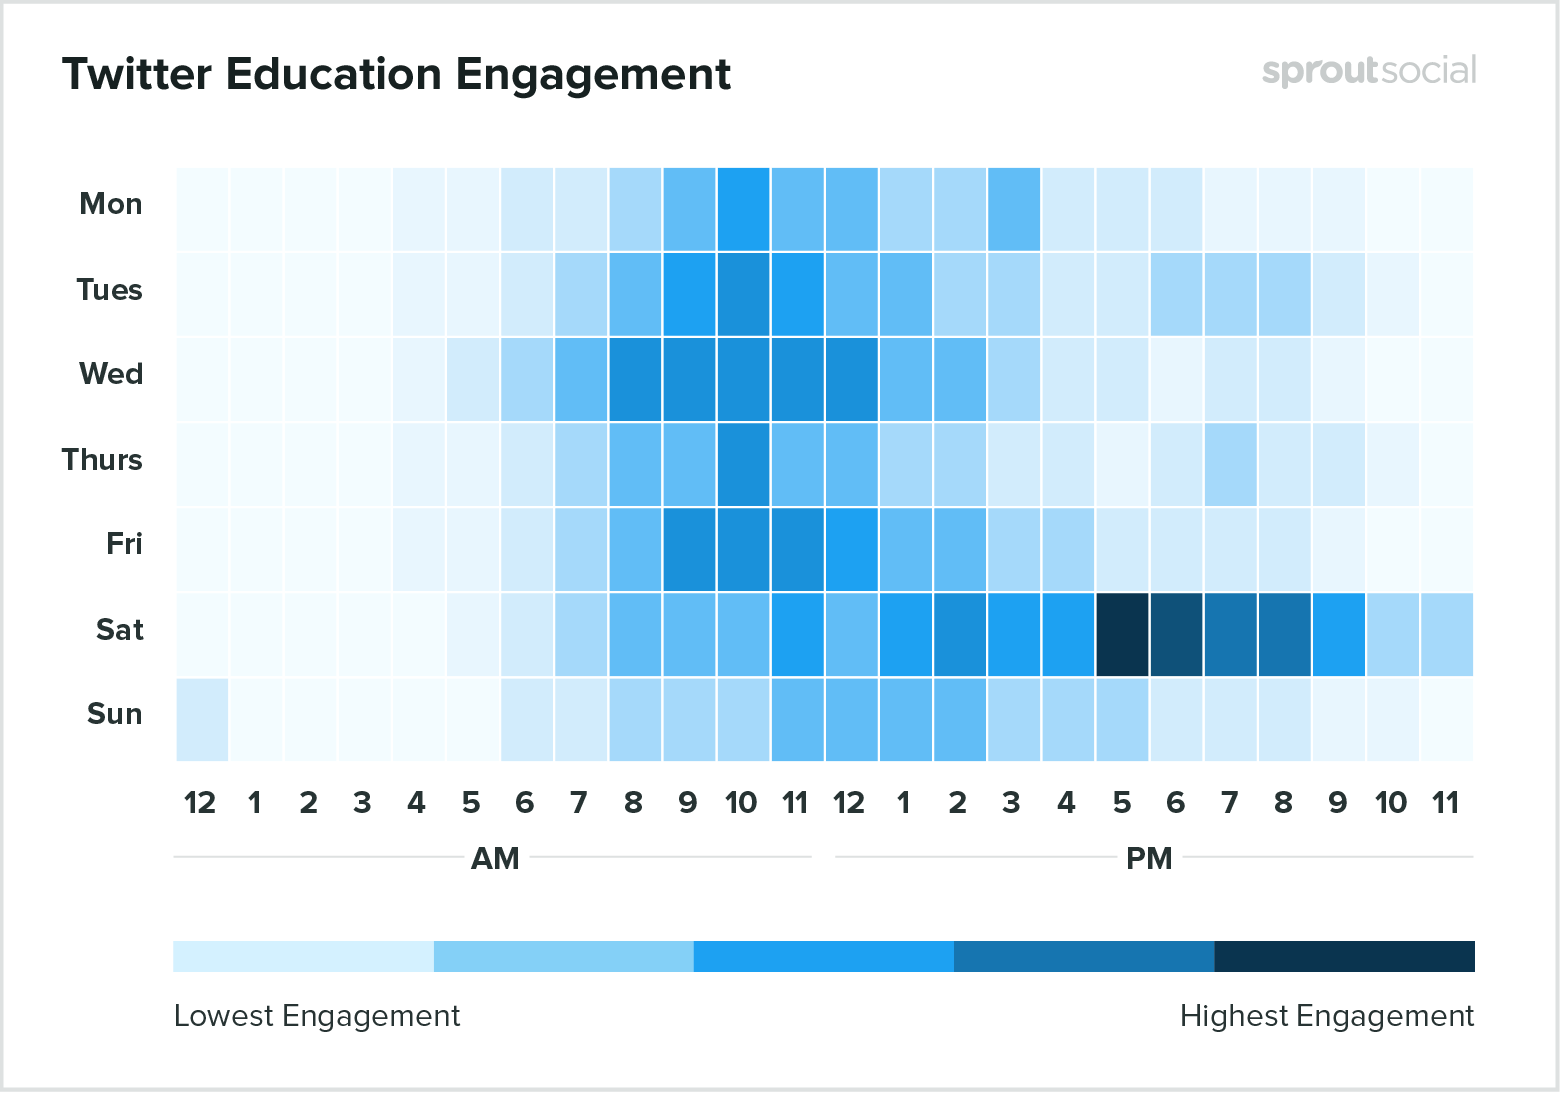 Best times to post on Twitter for education 2020